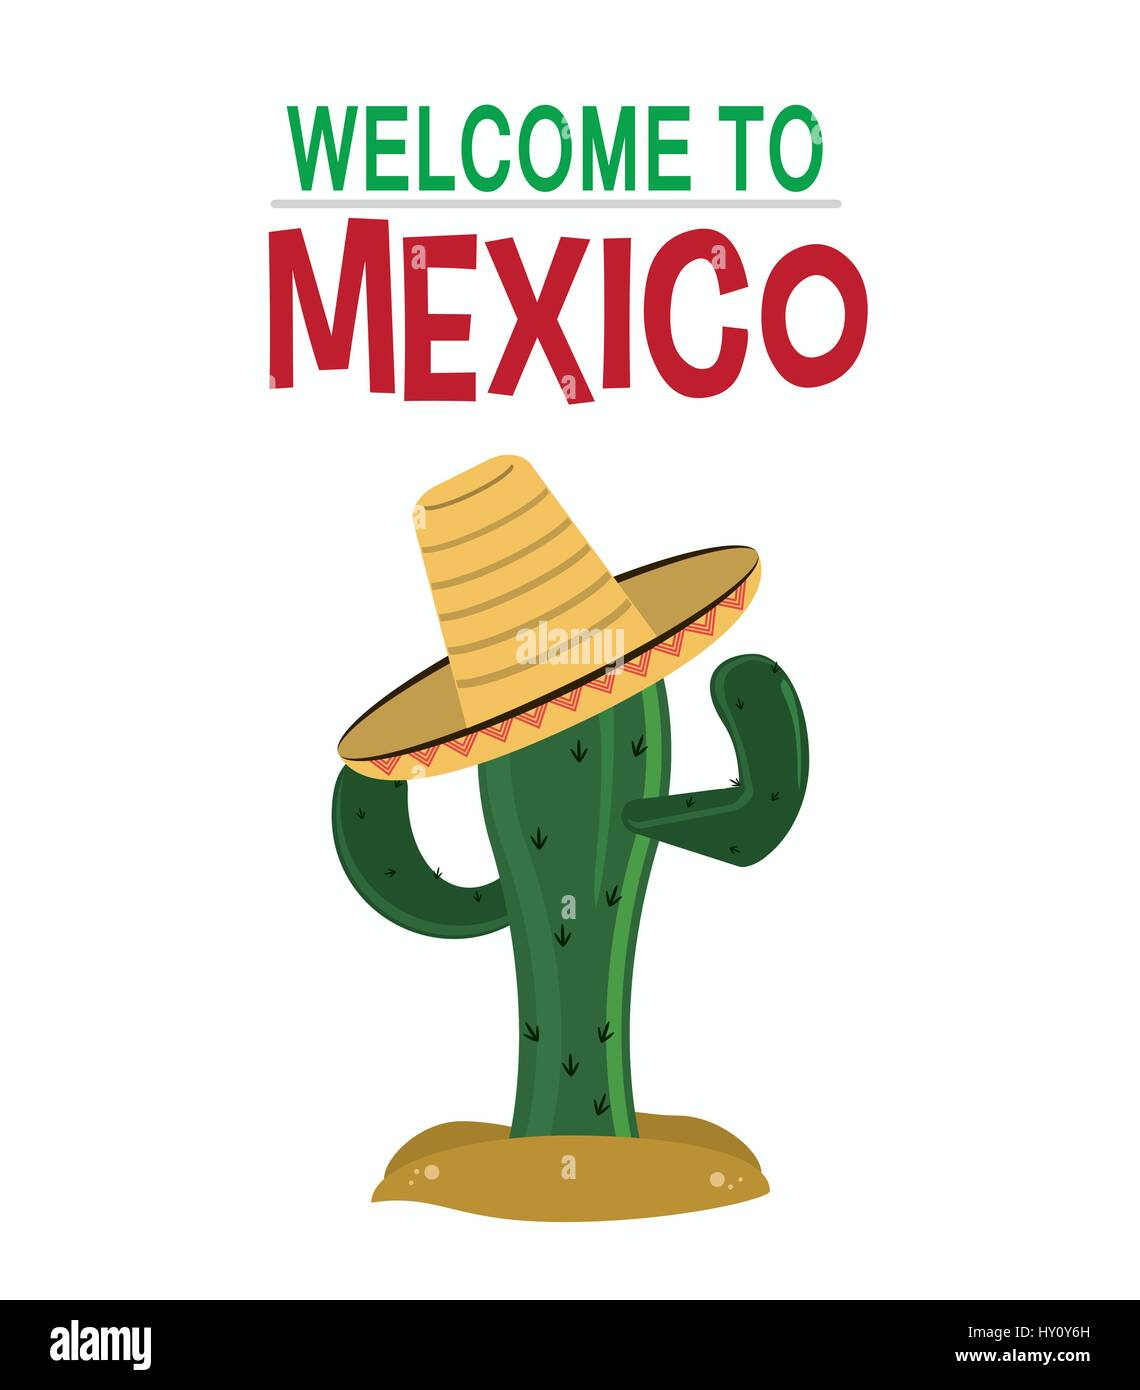 welcome to mexico card invitation culture - Stock Image